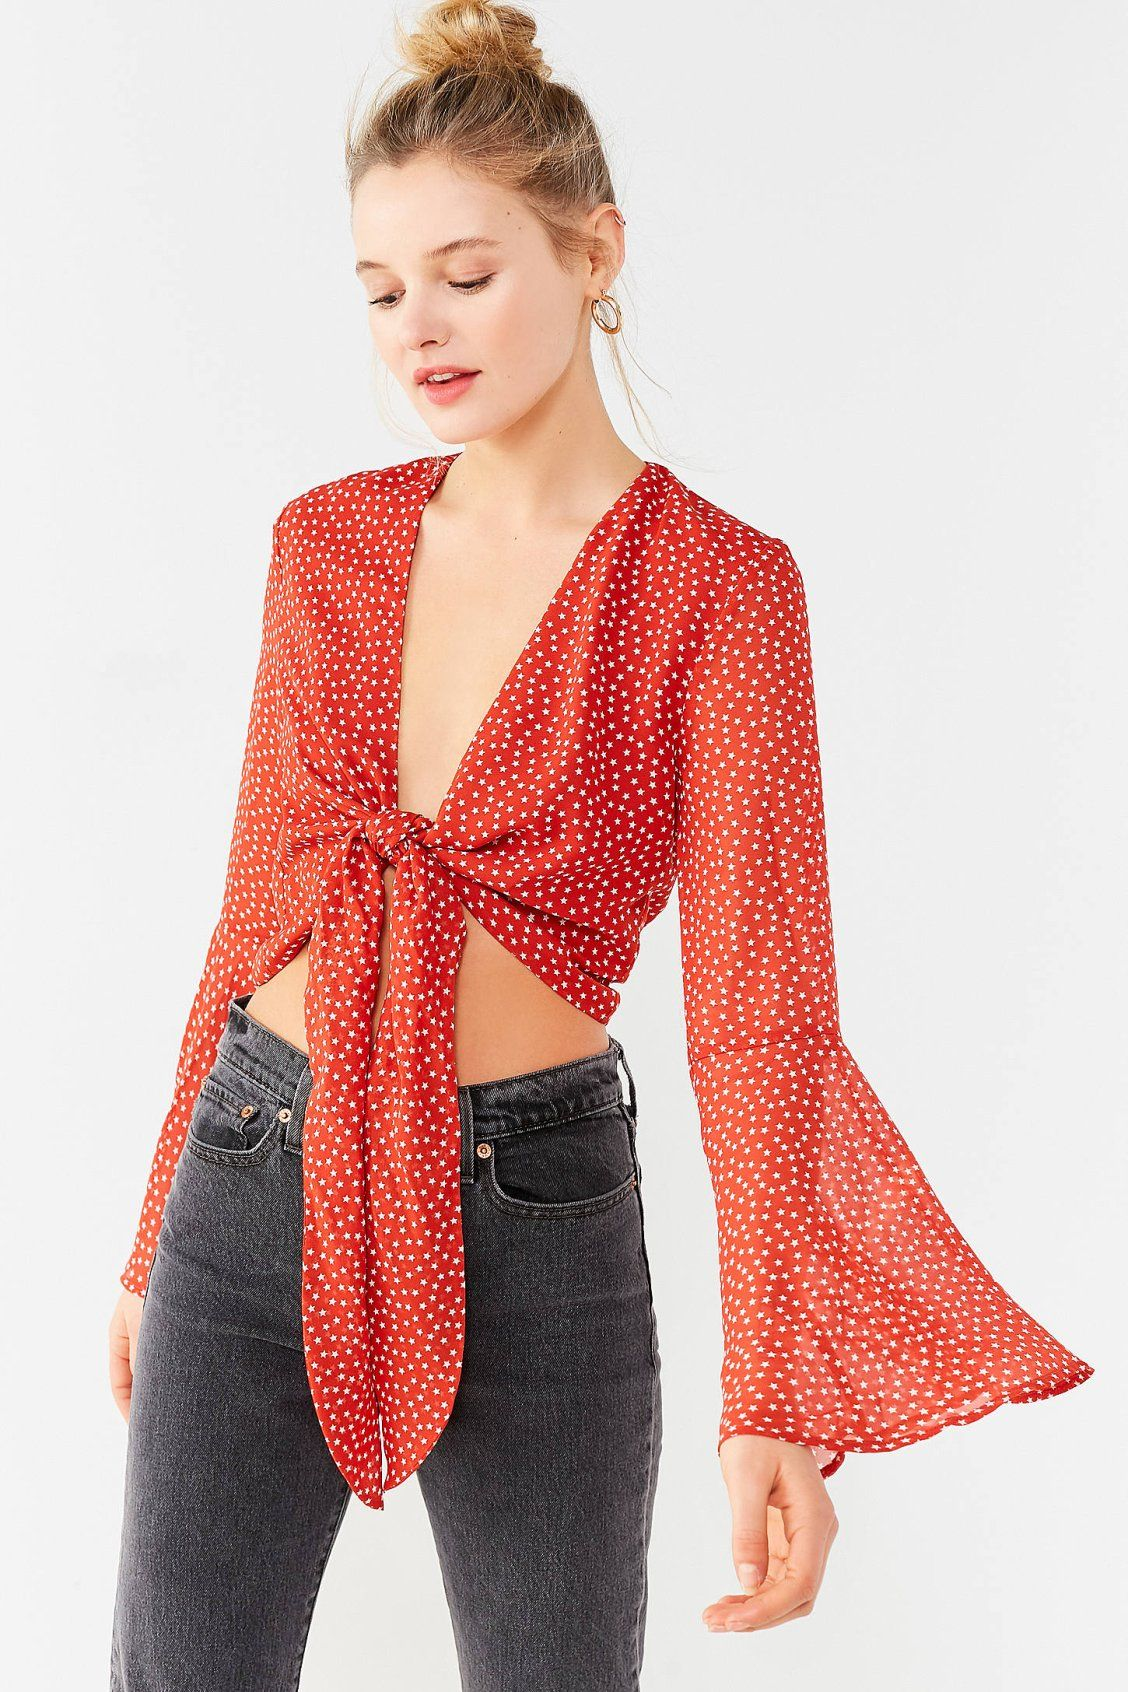 Uo tie front bell sleeve cropped top corpo e pano uo tie front bell sleeve cropped top urban outfitters ccuart Gallery